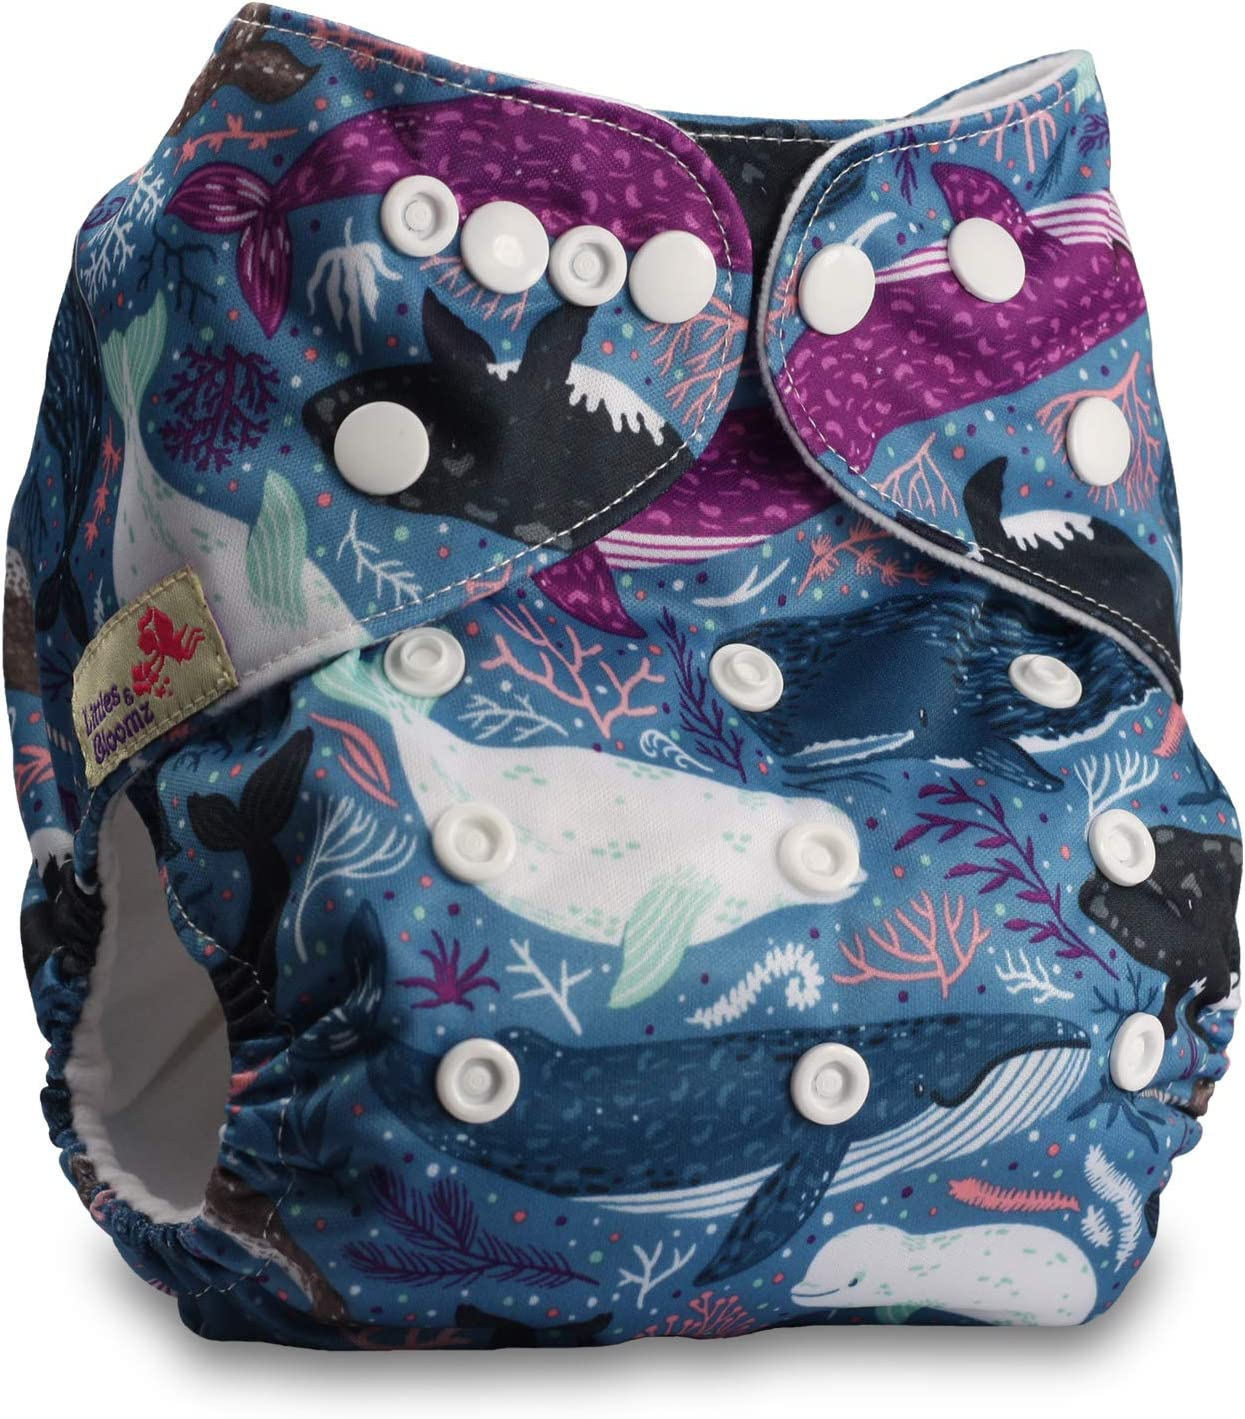 Set of 3 Reusable Pocket Cloth Nappy Fastener: Popper Littles /& Bloomz Without Insert Patterns 307